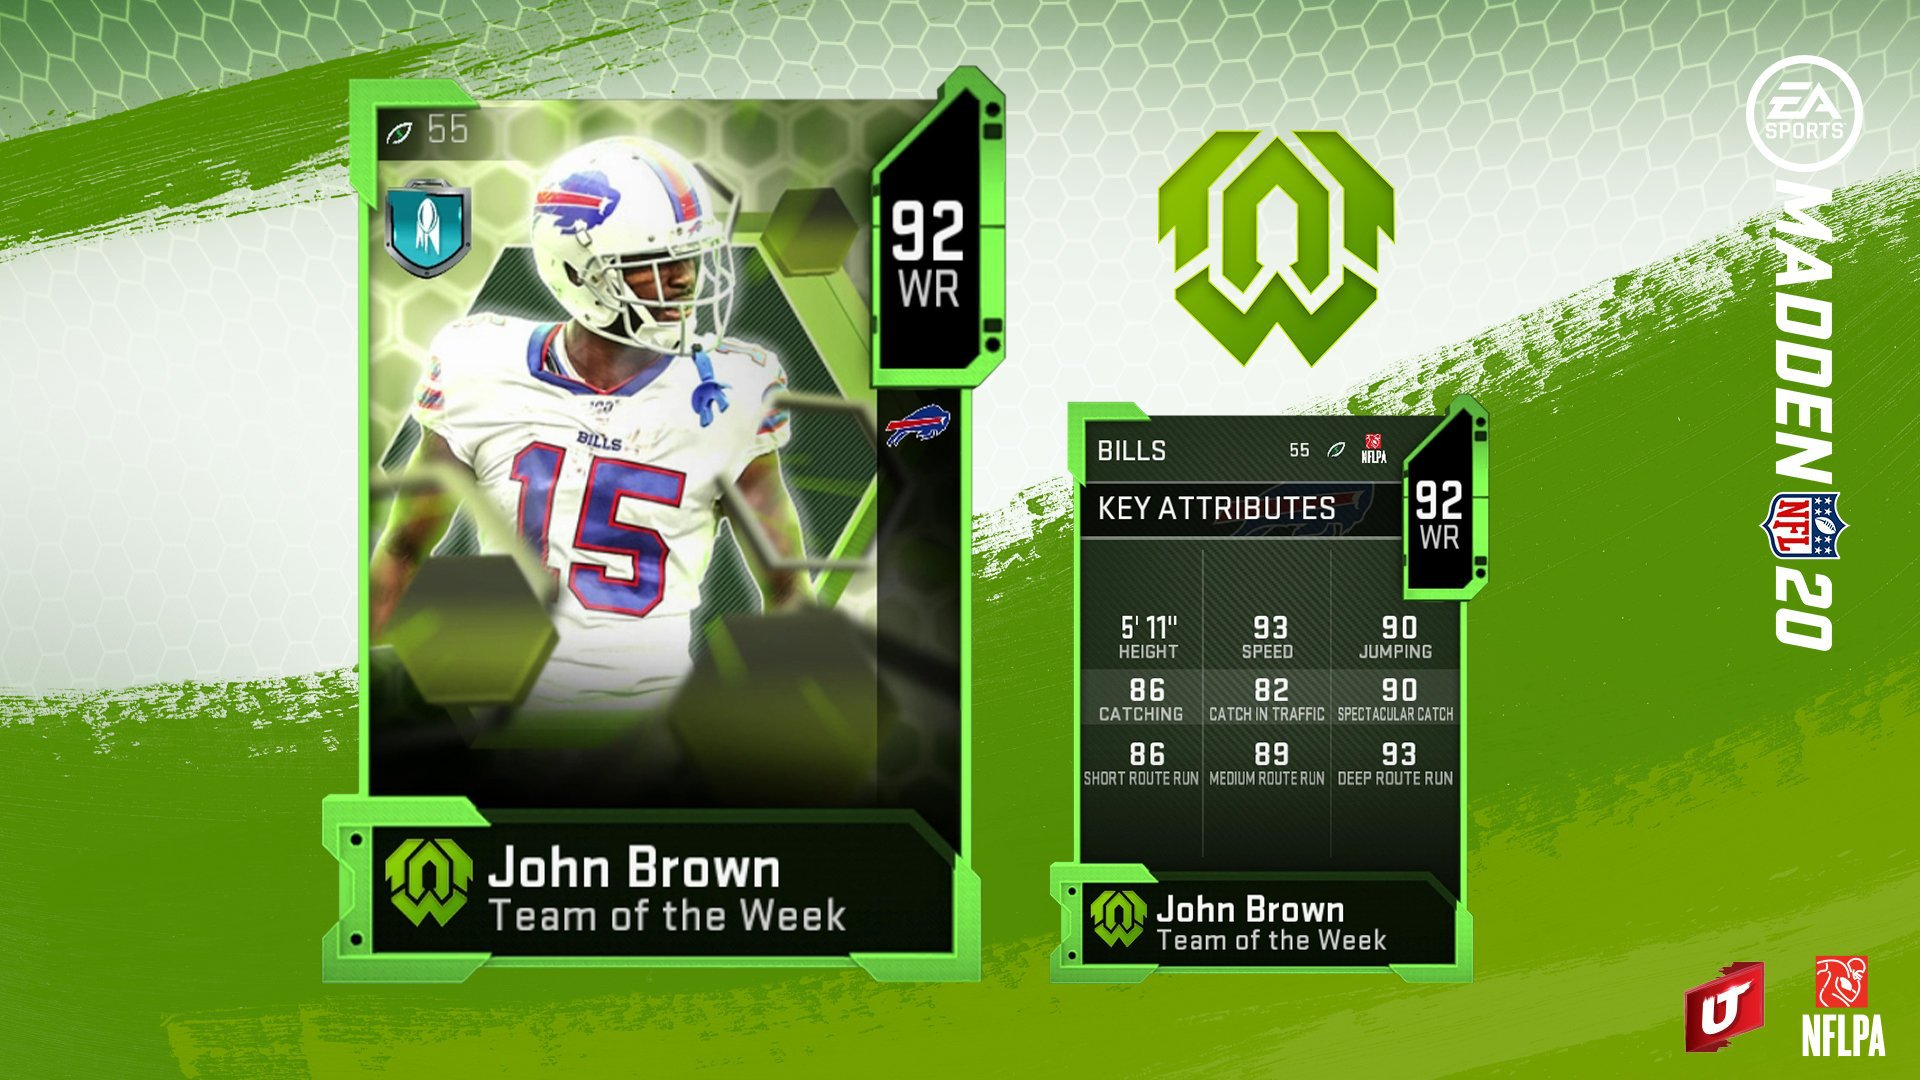 JBrowntotwpic.jpg